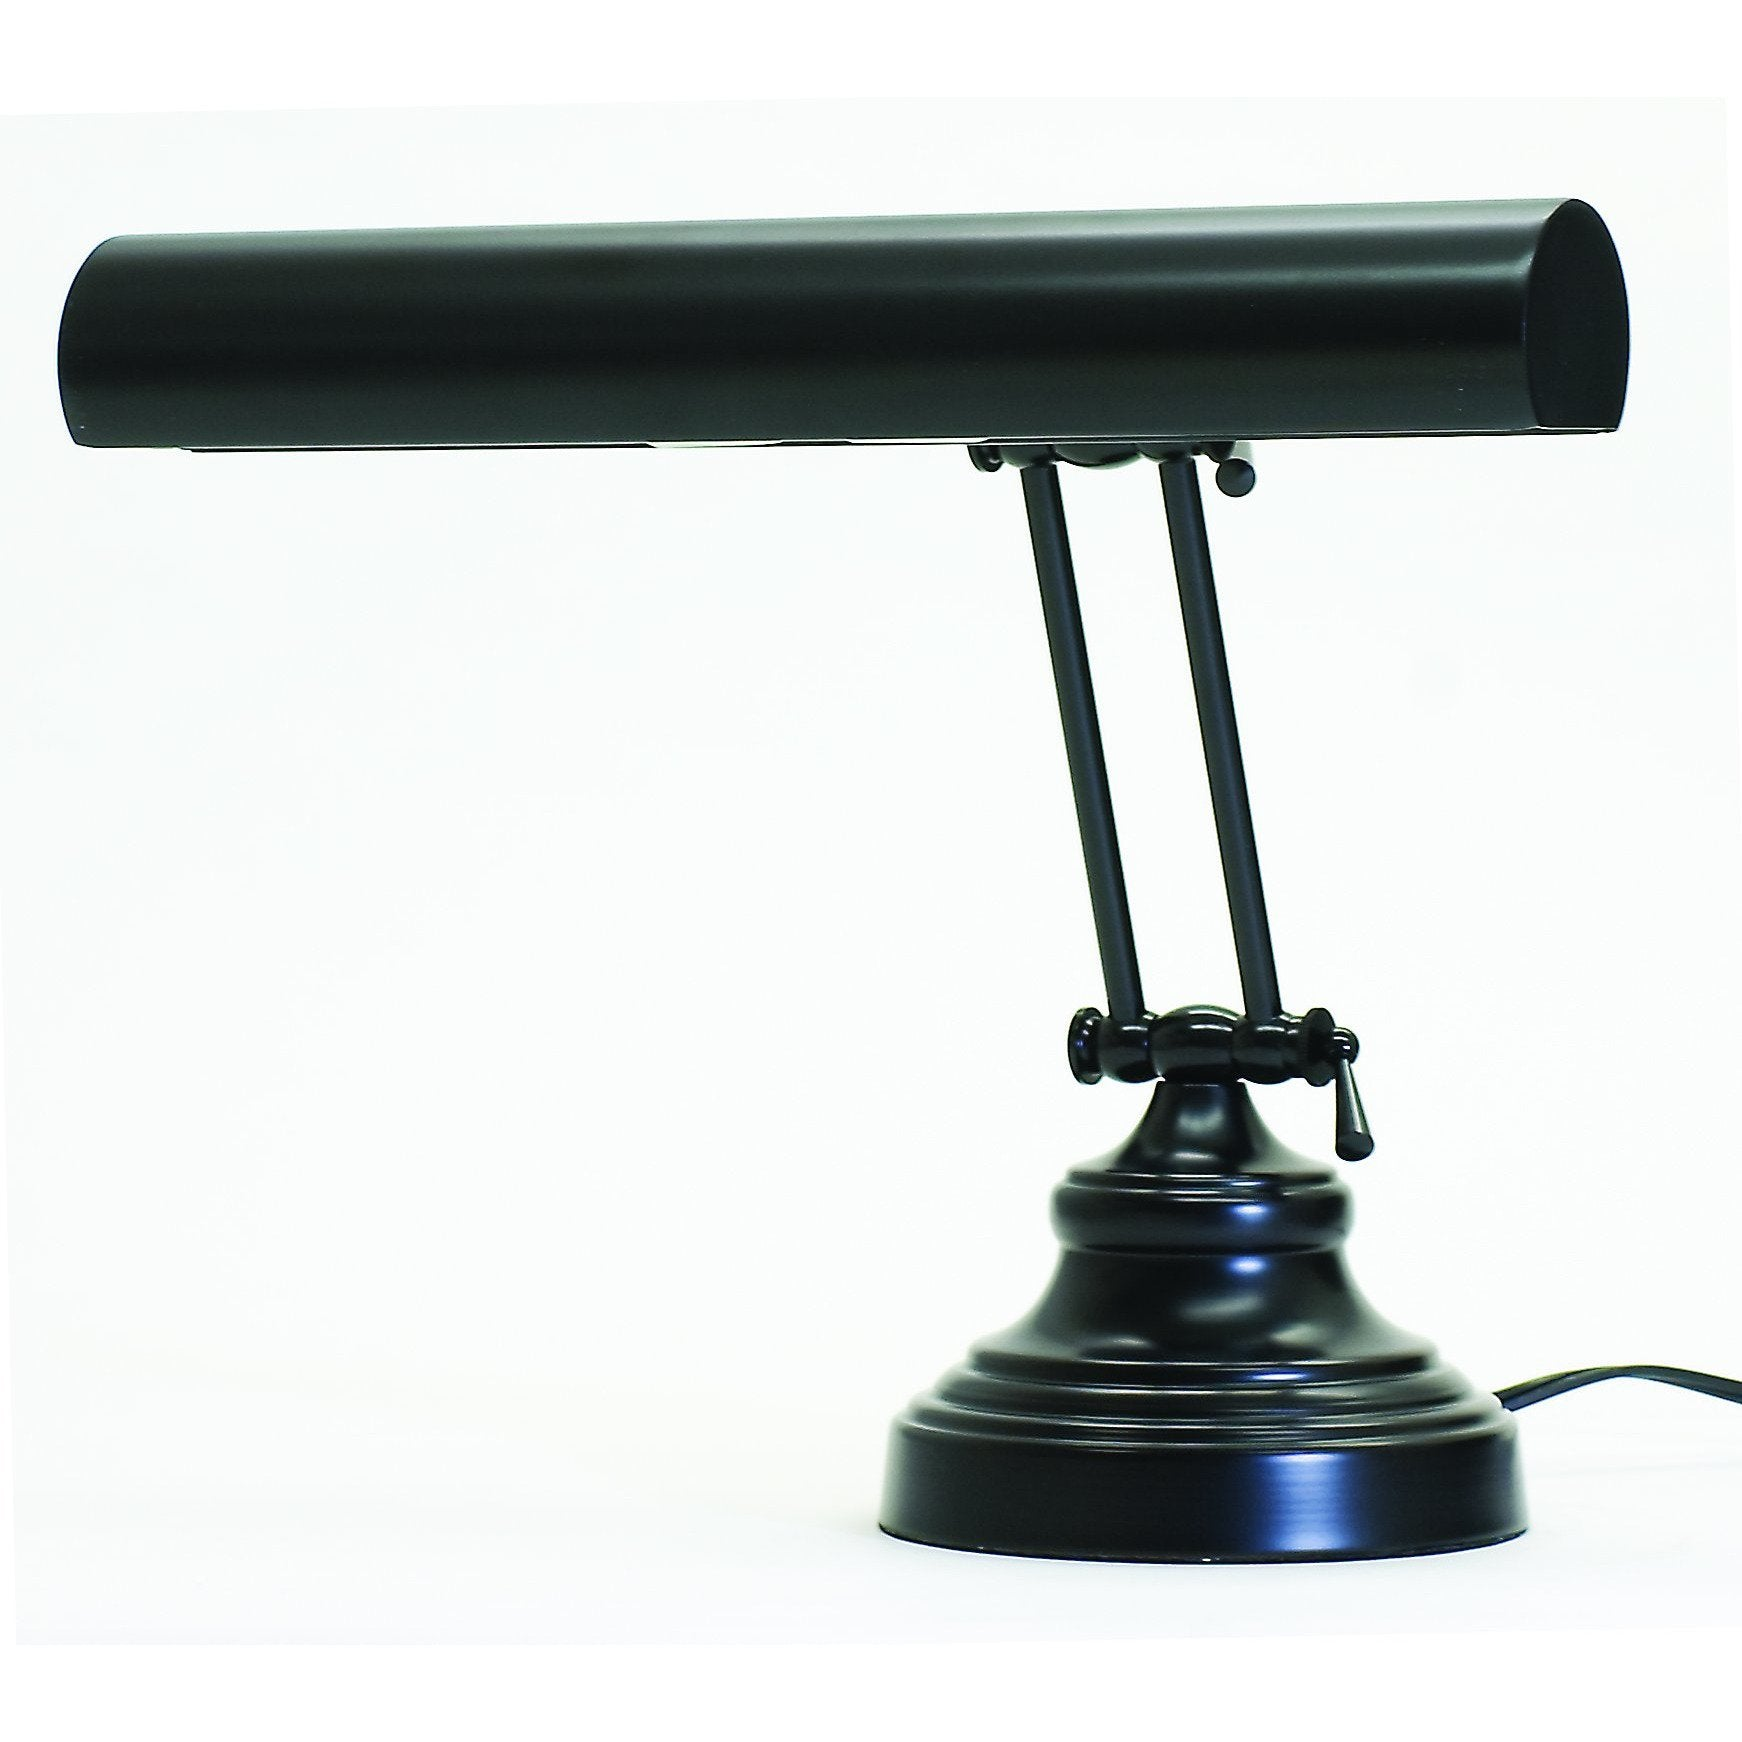 House Of Troy Desk Lamps Advent Desk/Piano Lamp by House Of Troy AP14-41-7